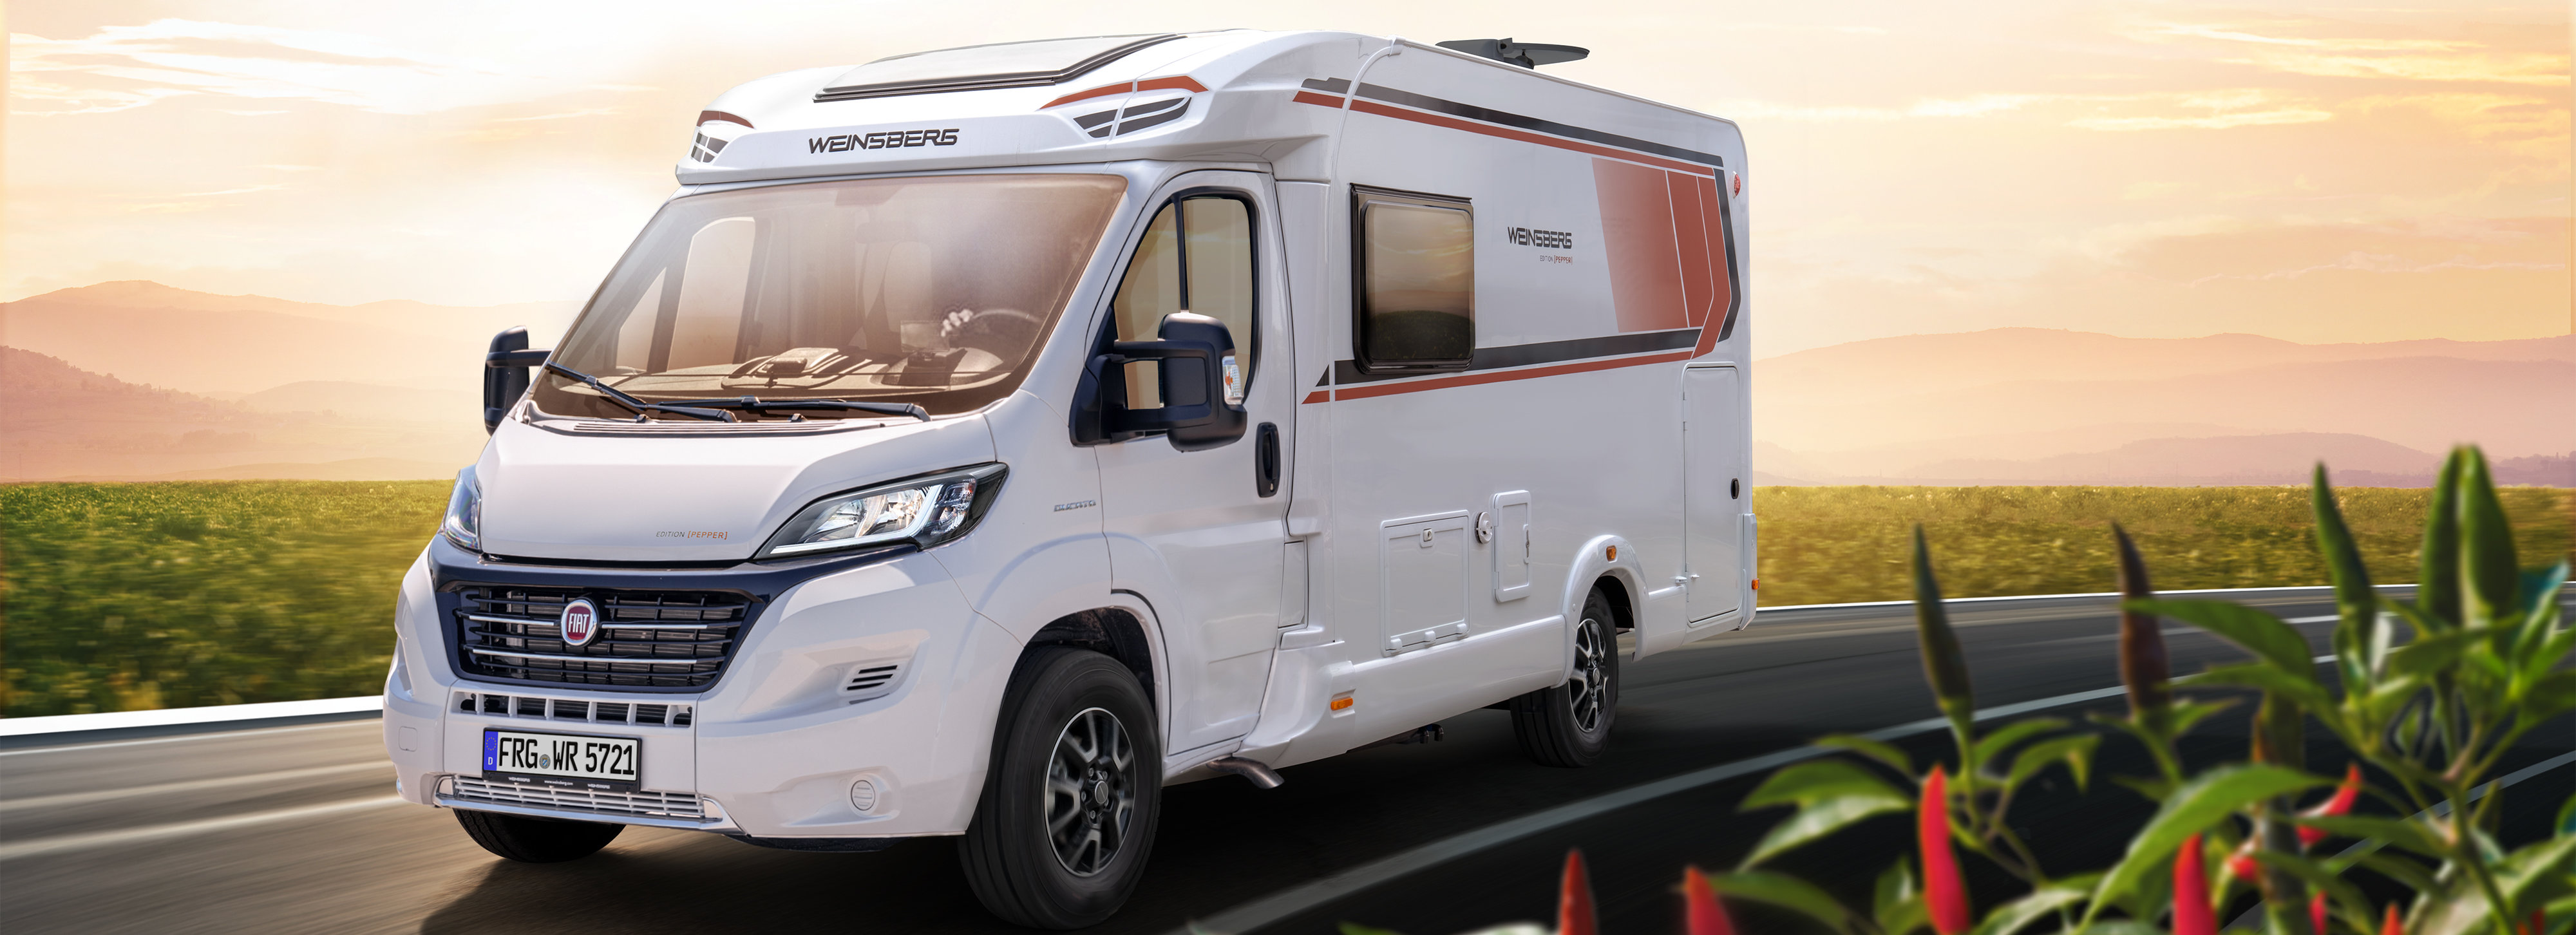 WEINSBERG CaraCompact EDITION [PEPPER] – Wohnmobil-Sondermodell